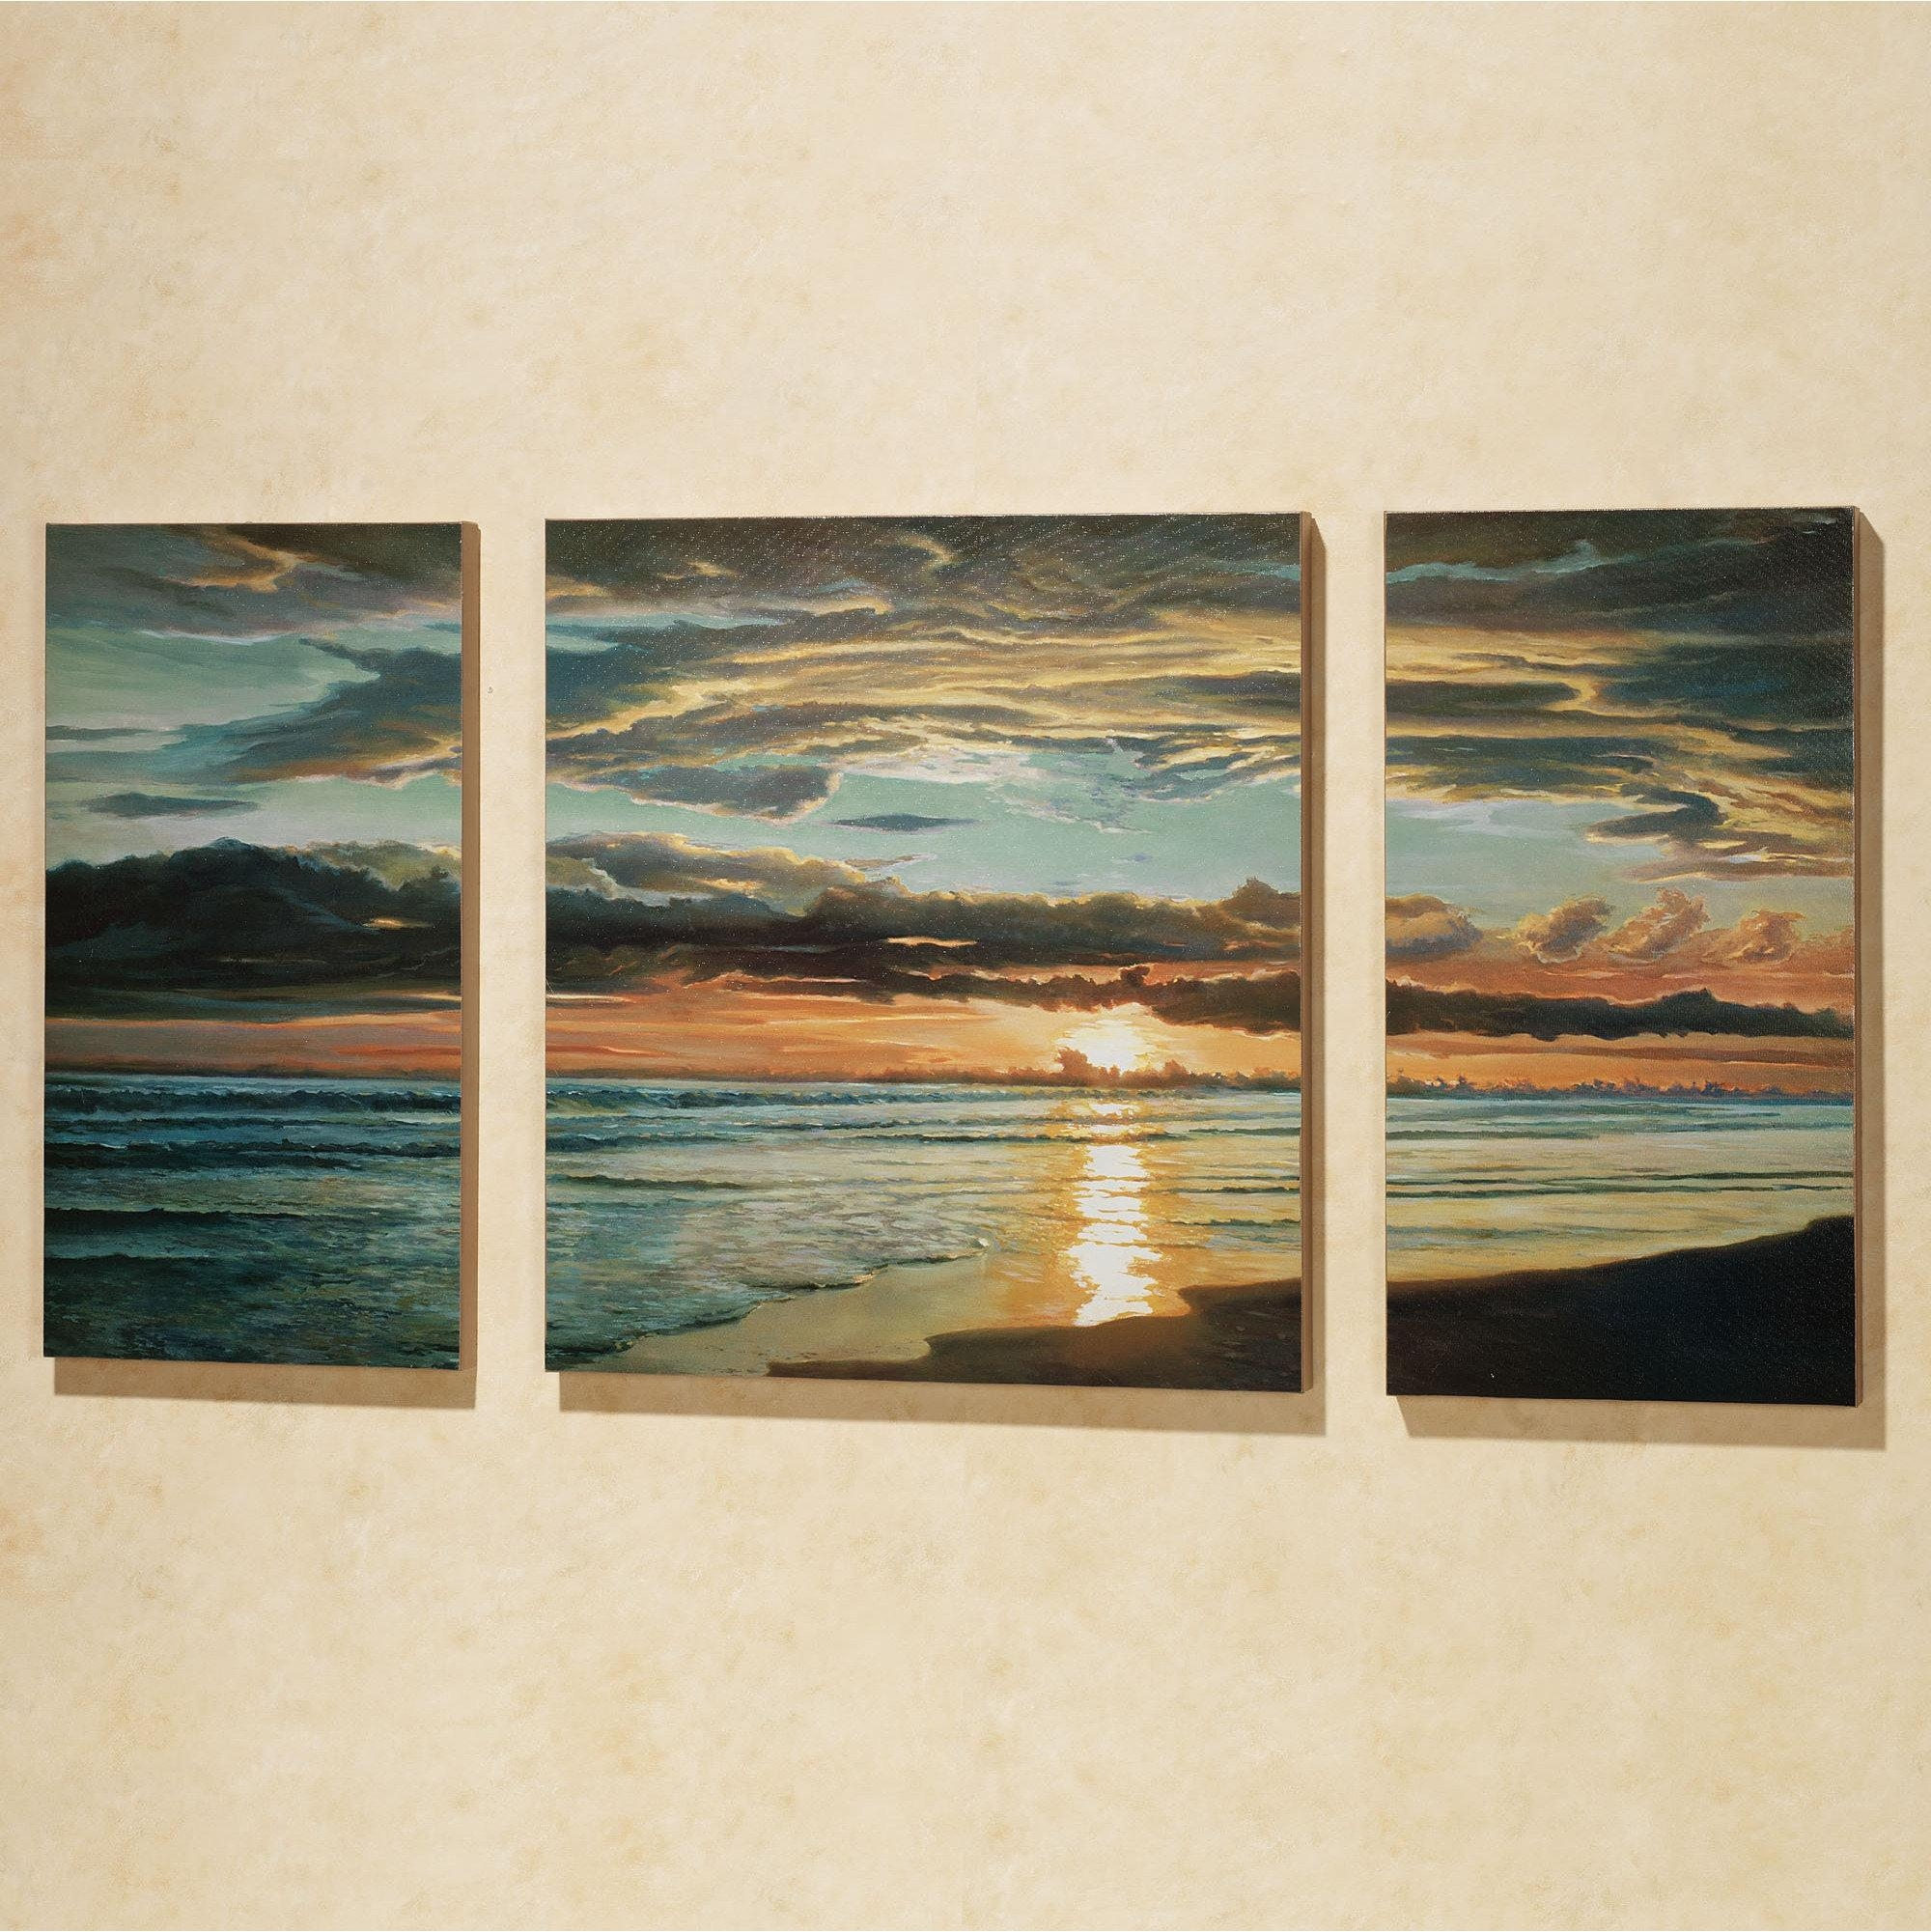 Wall Art Designs: Modern Designing Triptych Wall Art Canvas For Within Large Triptych Wall Art (View 3 of 20)